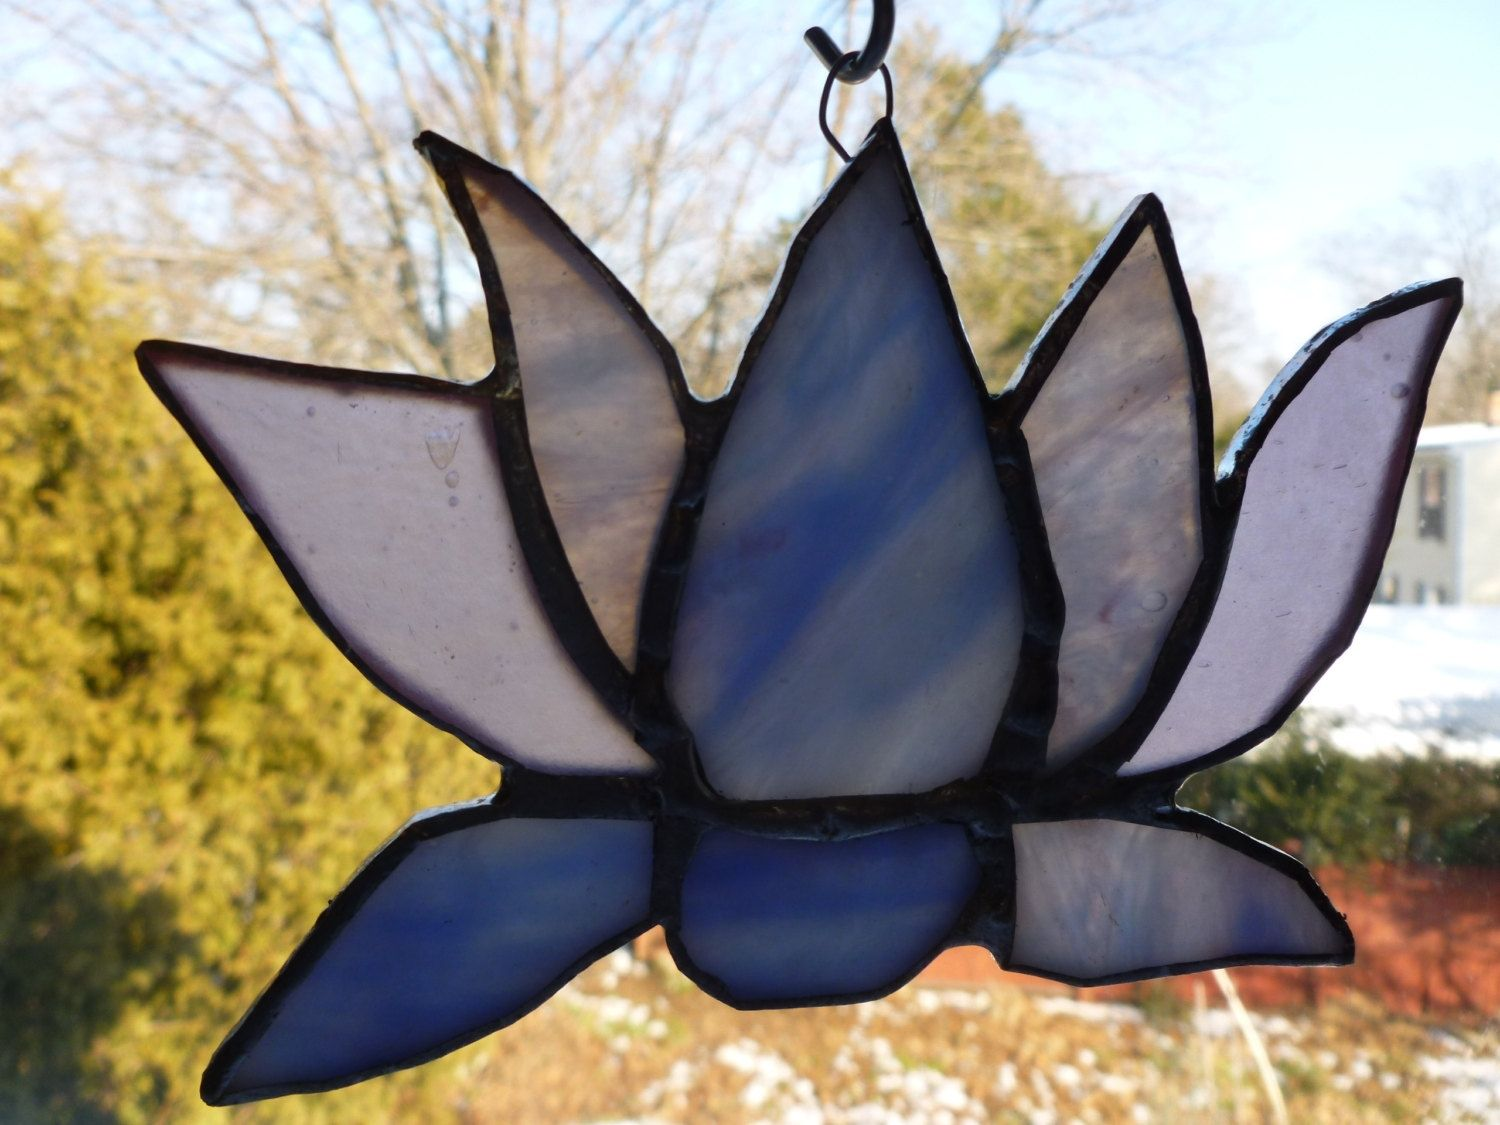 Buy A Custom Stained Glass Lotus Flower Made To Order From Glass